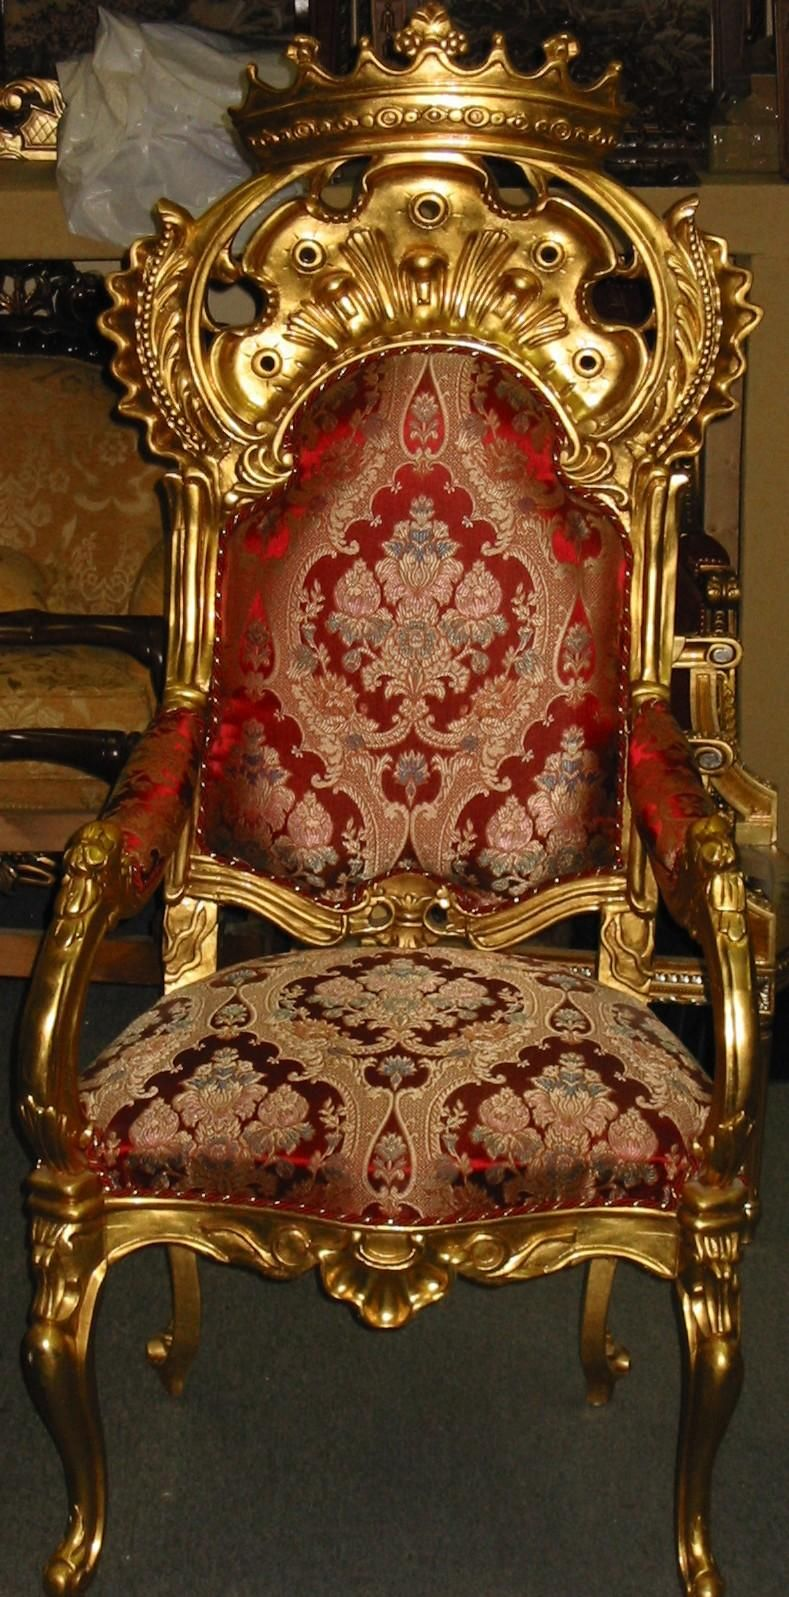 royal chairs for sale | Chairs,Royal,Victorian,Louis style ...